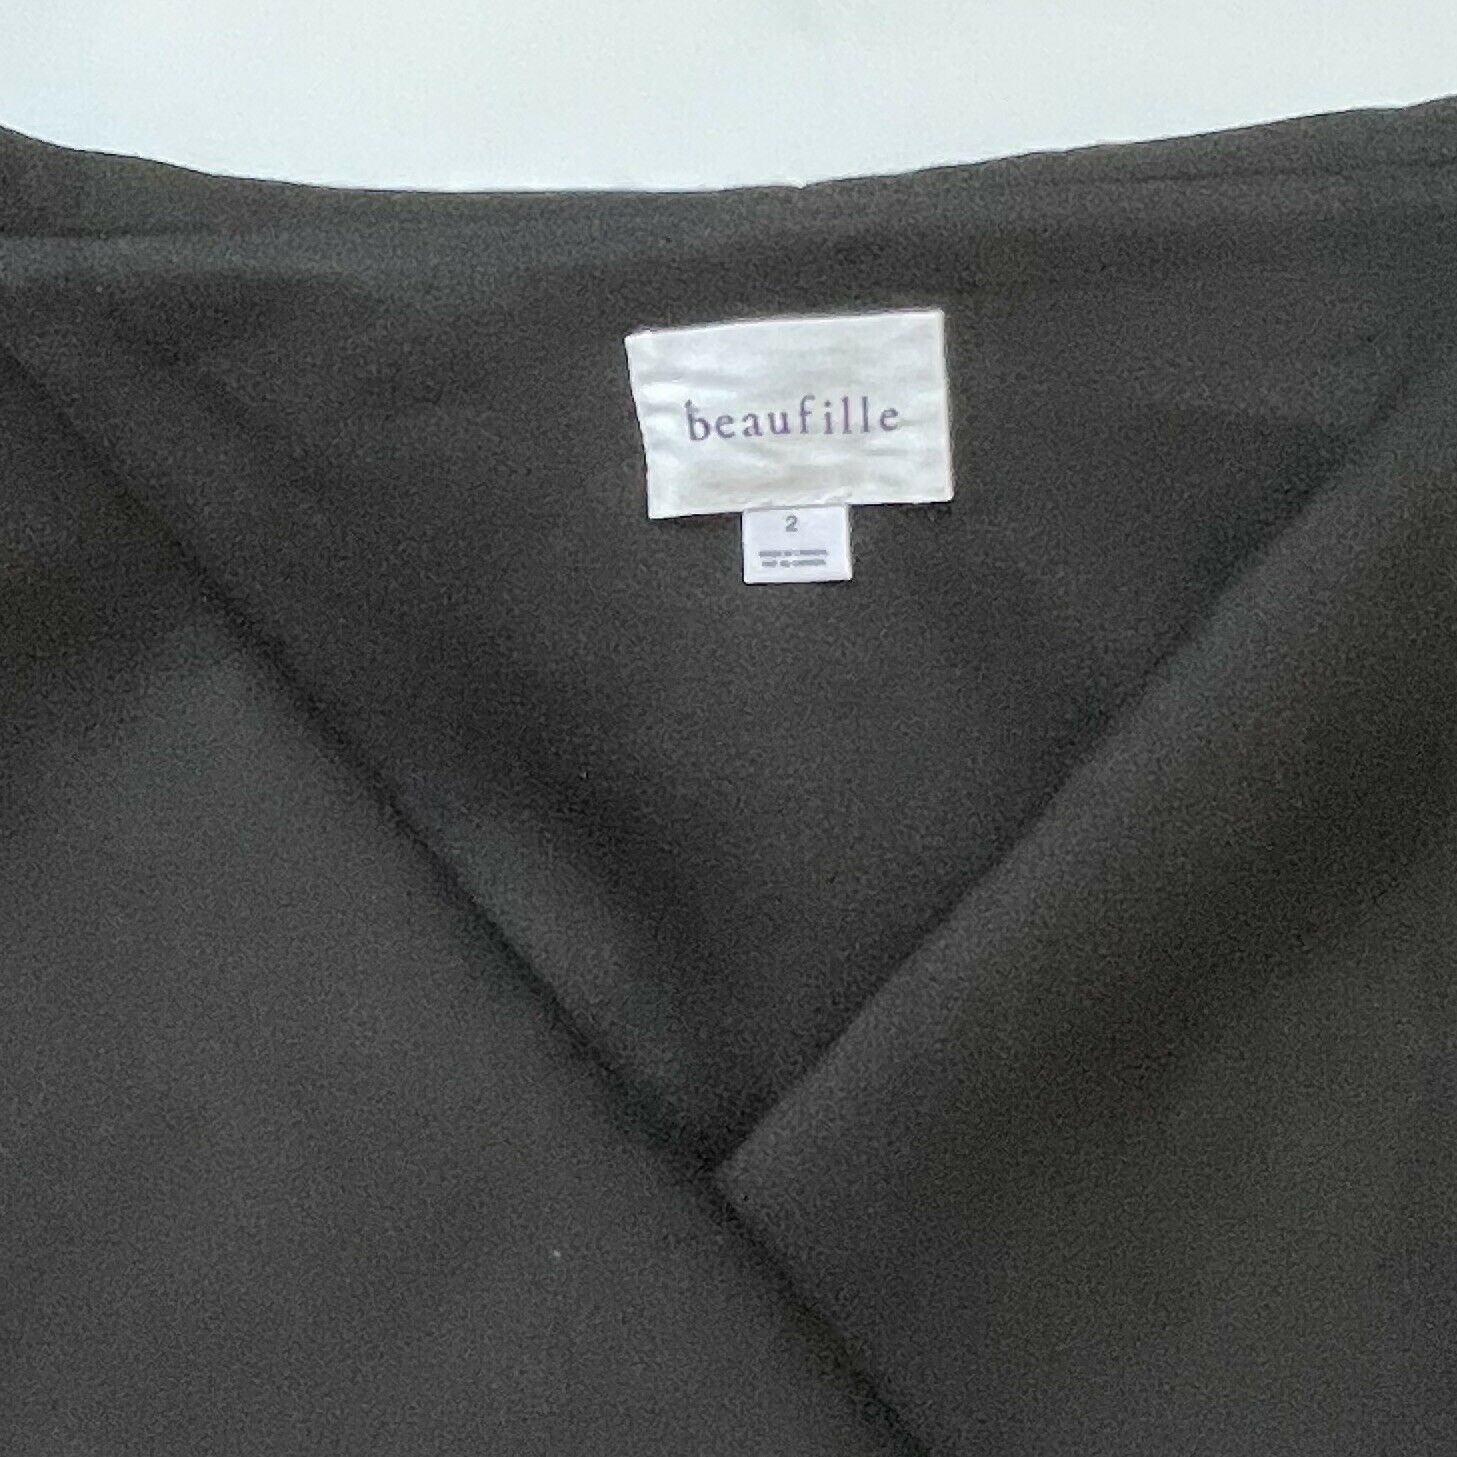 Beaufille Women's Clothing Size 2 Black Large Col… - image 11